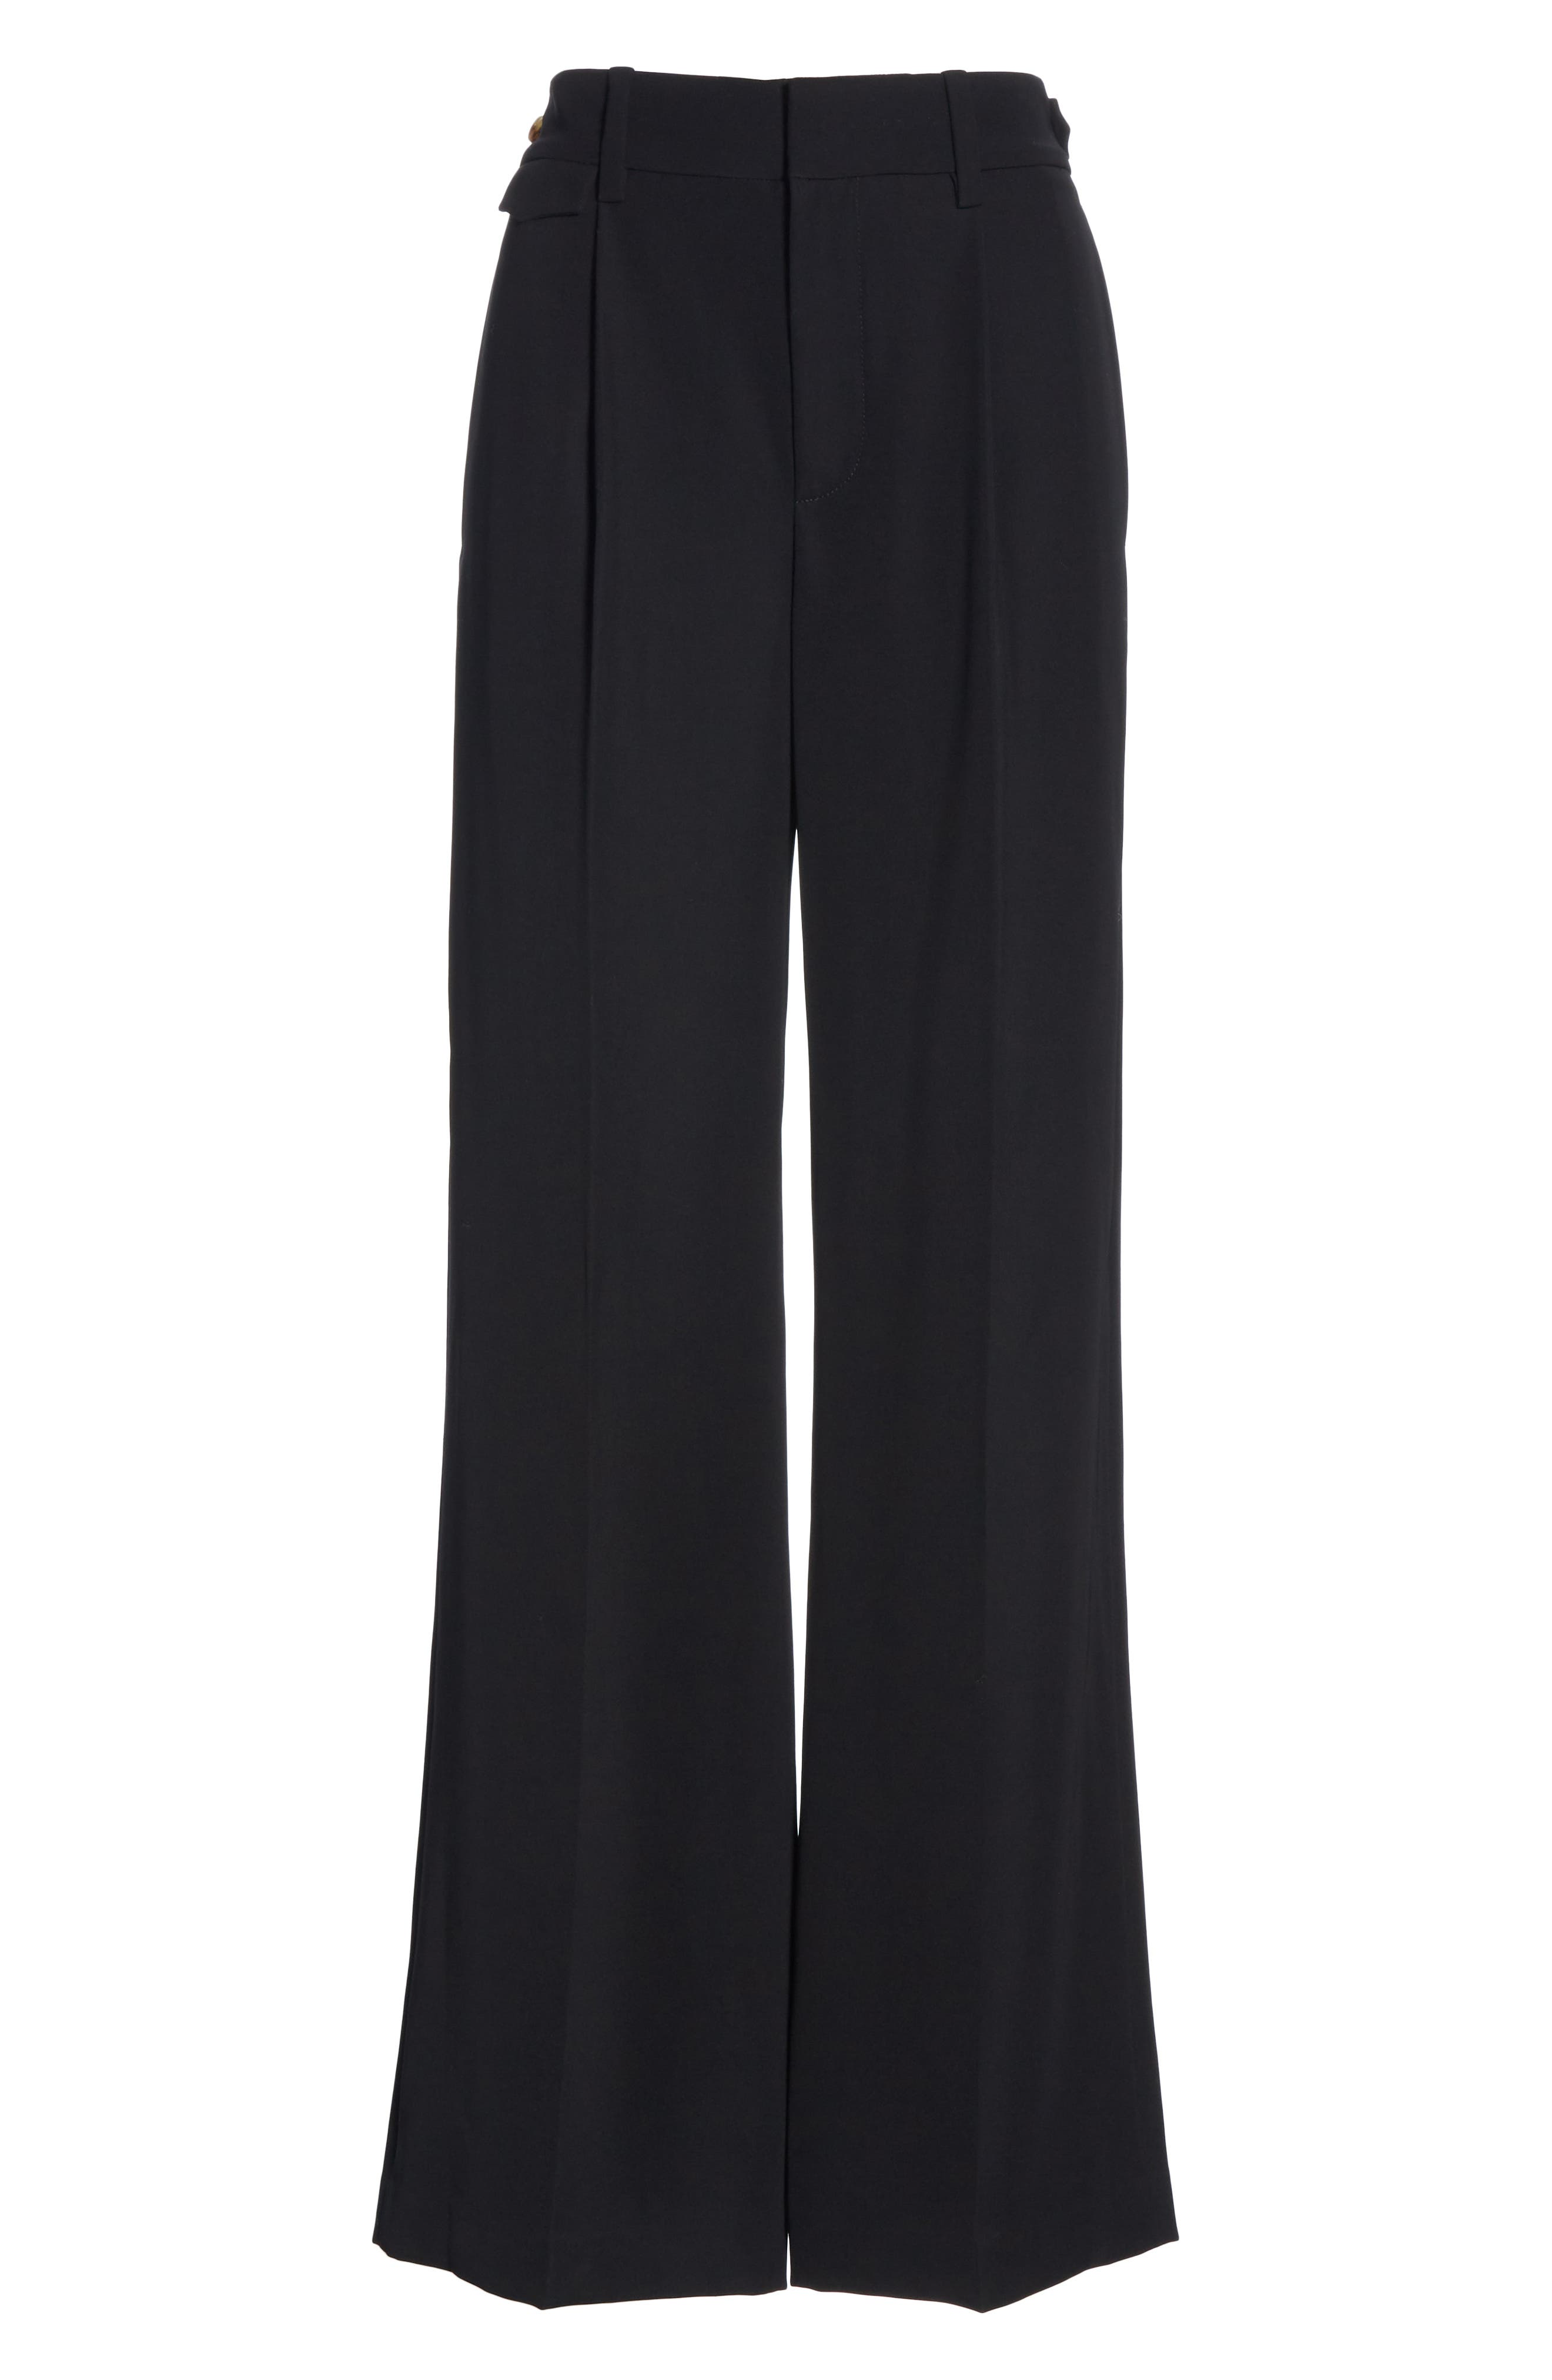 VINCE, Relaxed Wide Leg Trousers, Alternate thumbnail 7, color, BLACK